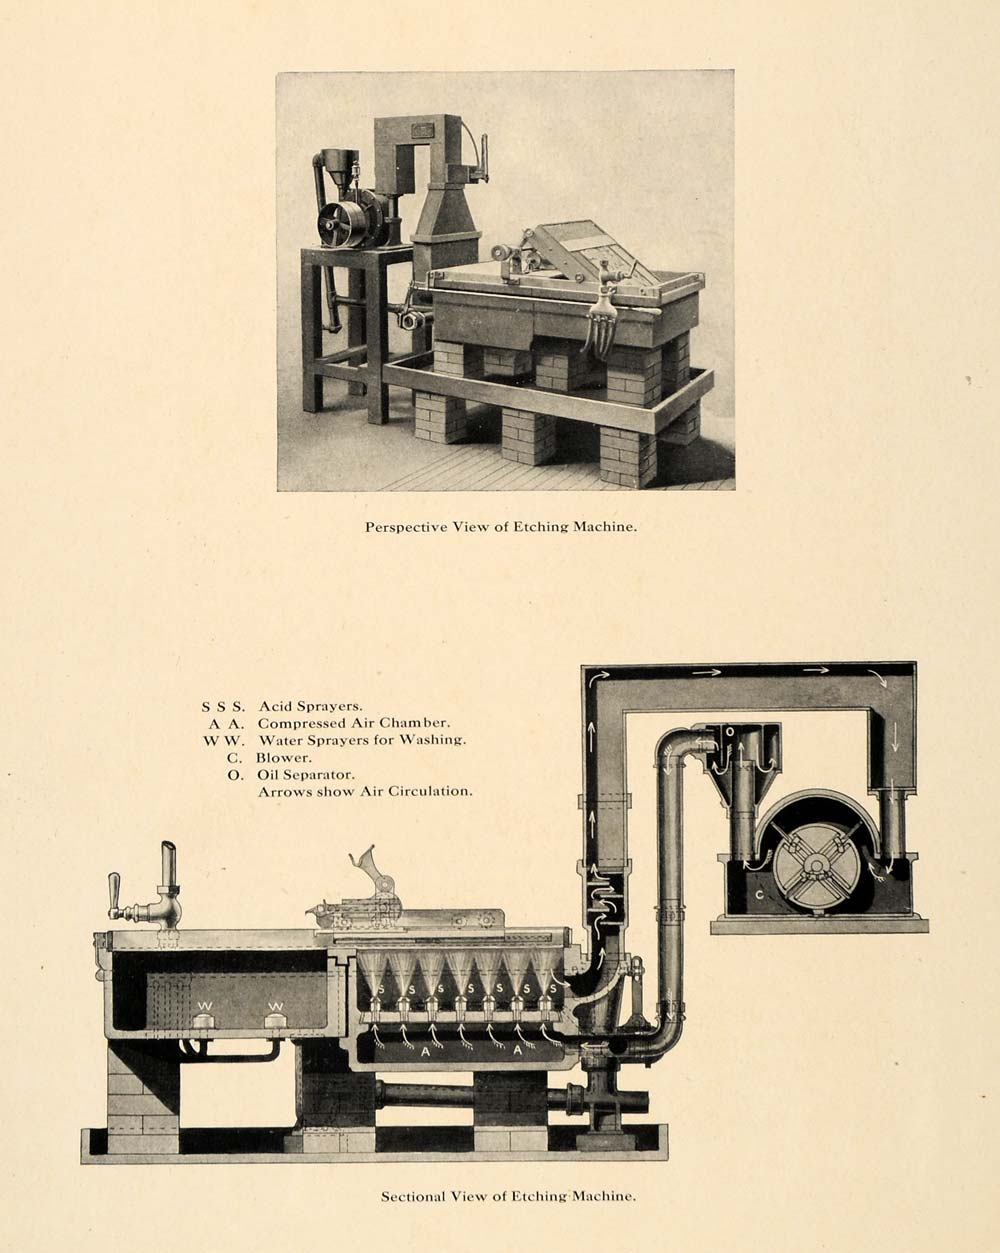 1908 Antique Etching Machine Printing Engraving Print - ORIGINAL HISTORIC GAC3